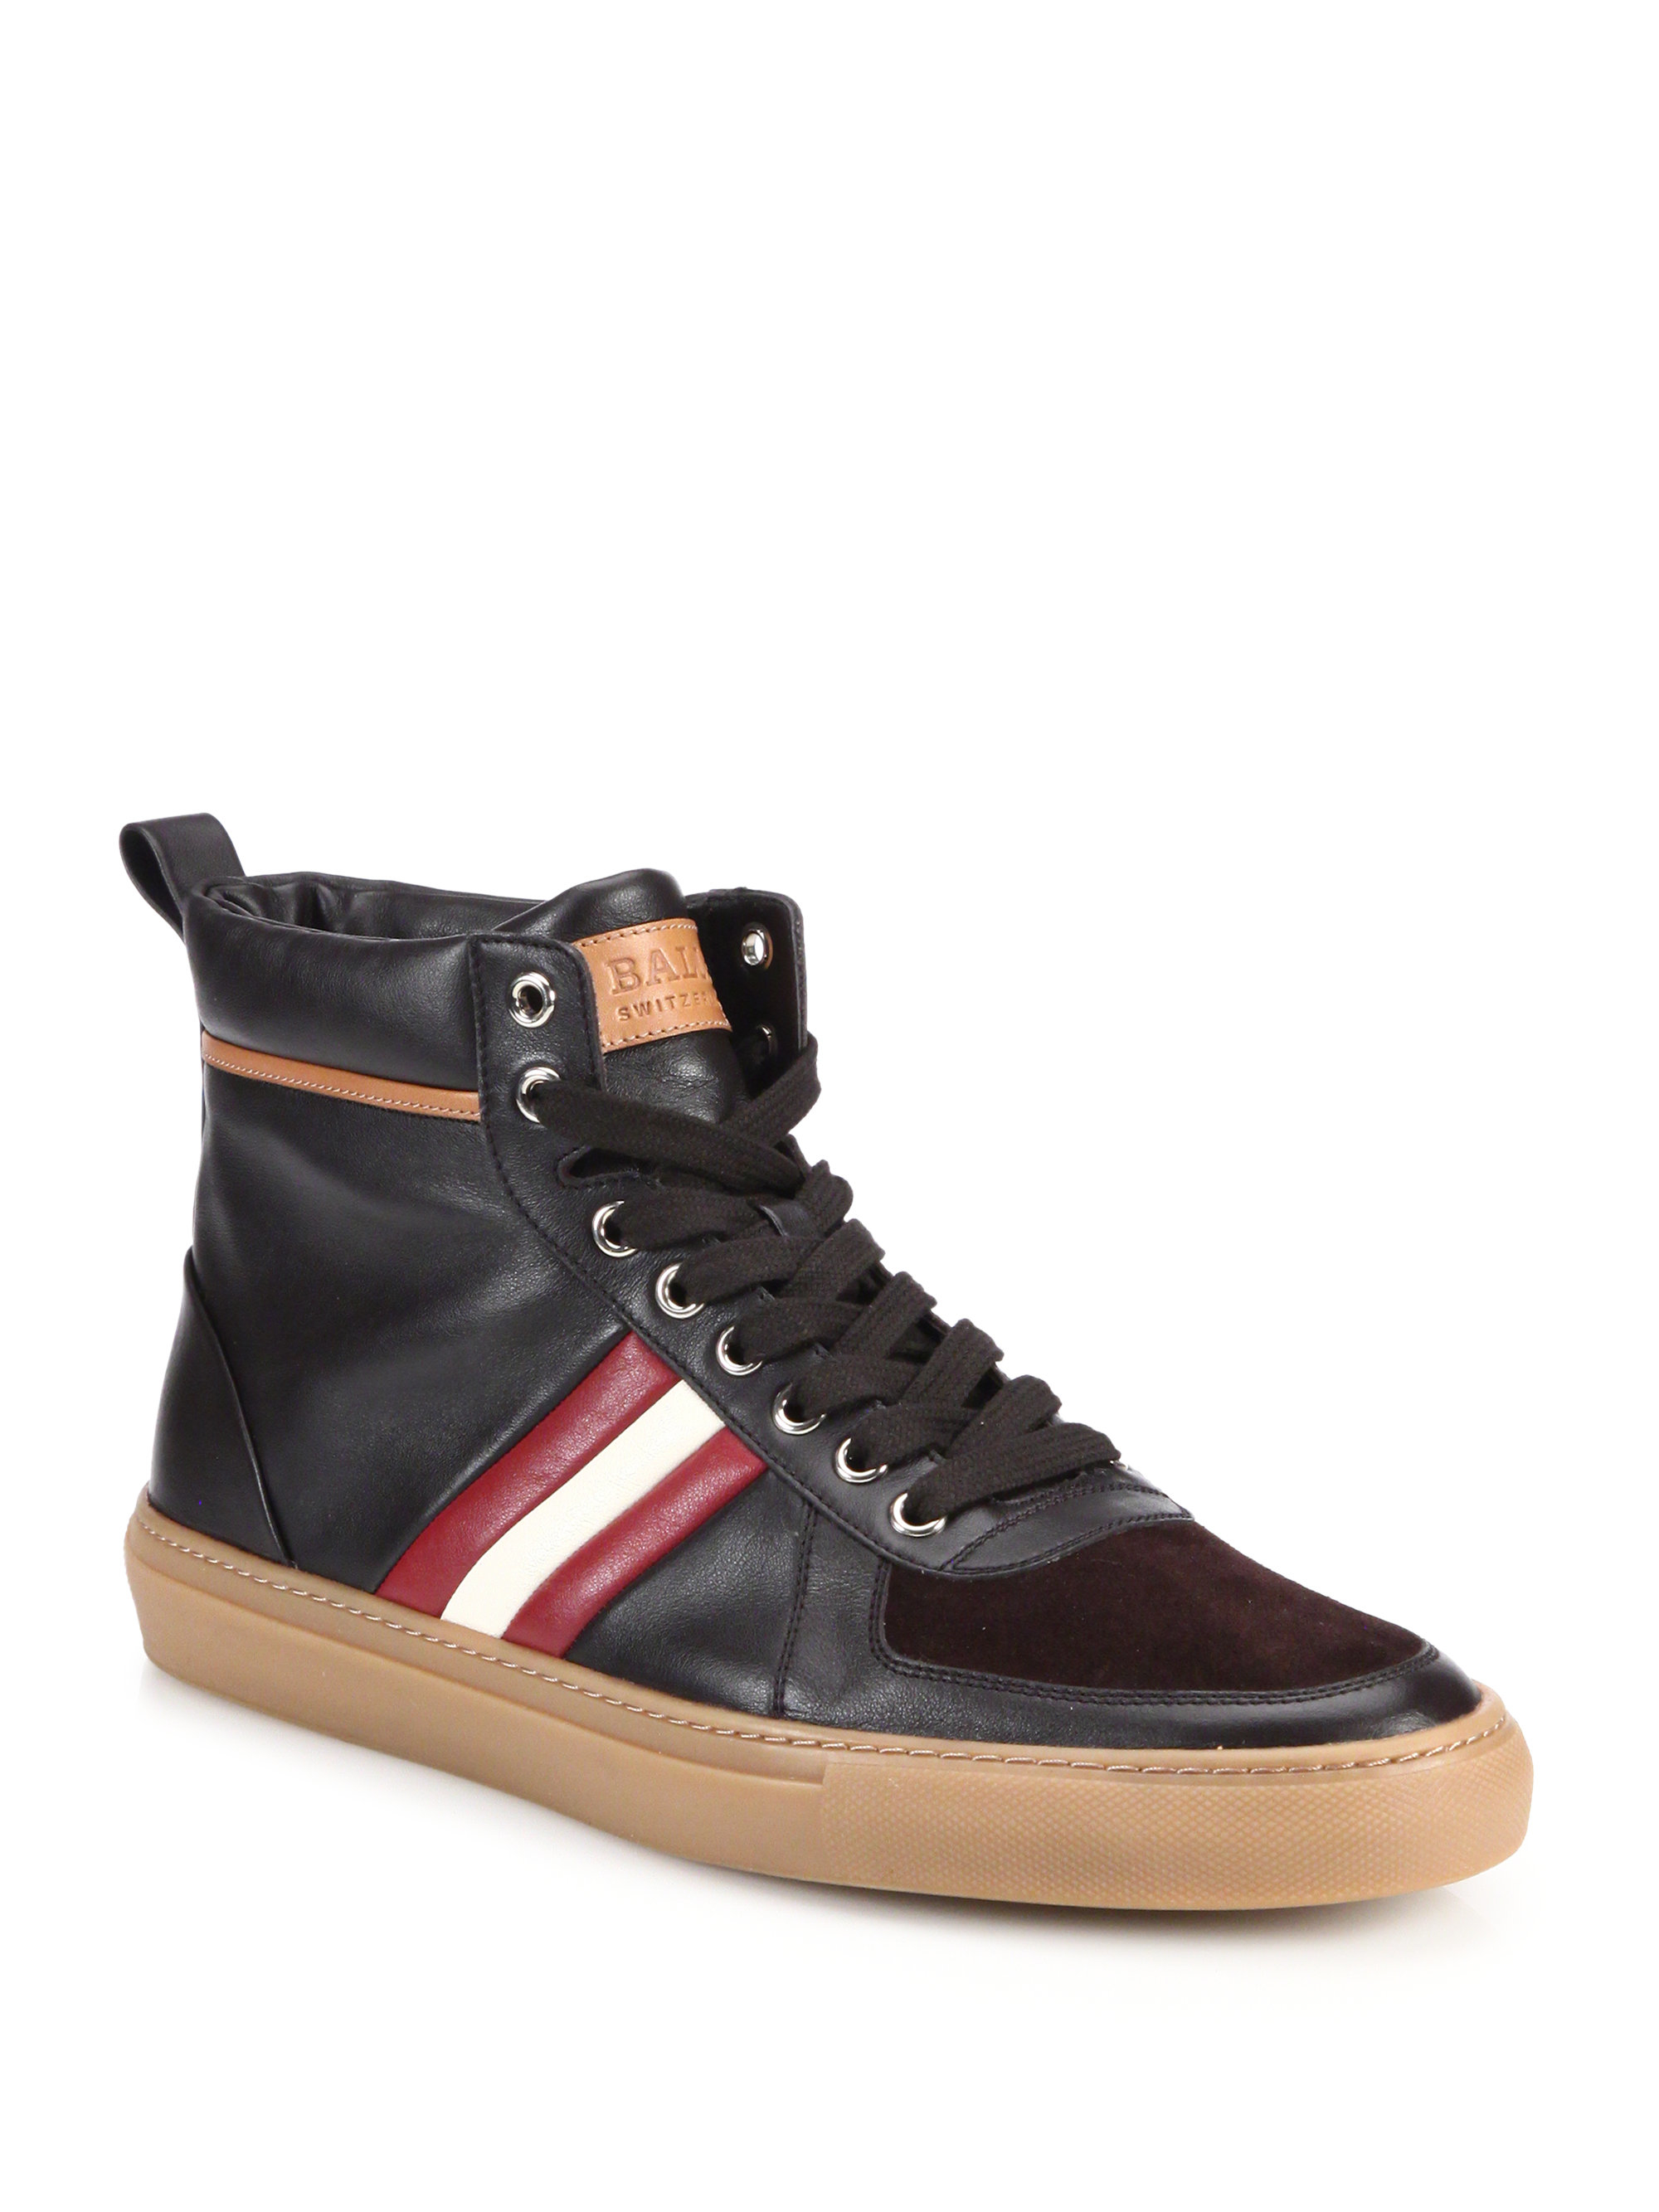 Bally Hervey Leather High Top Sneakers In Brown For Men Lyst